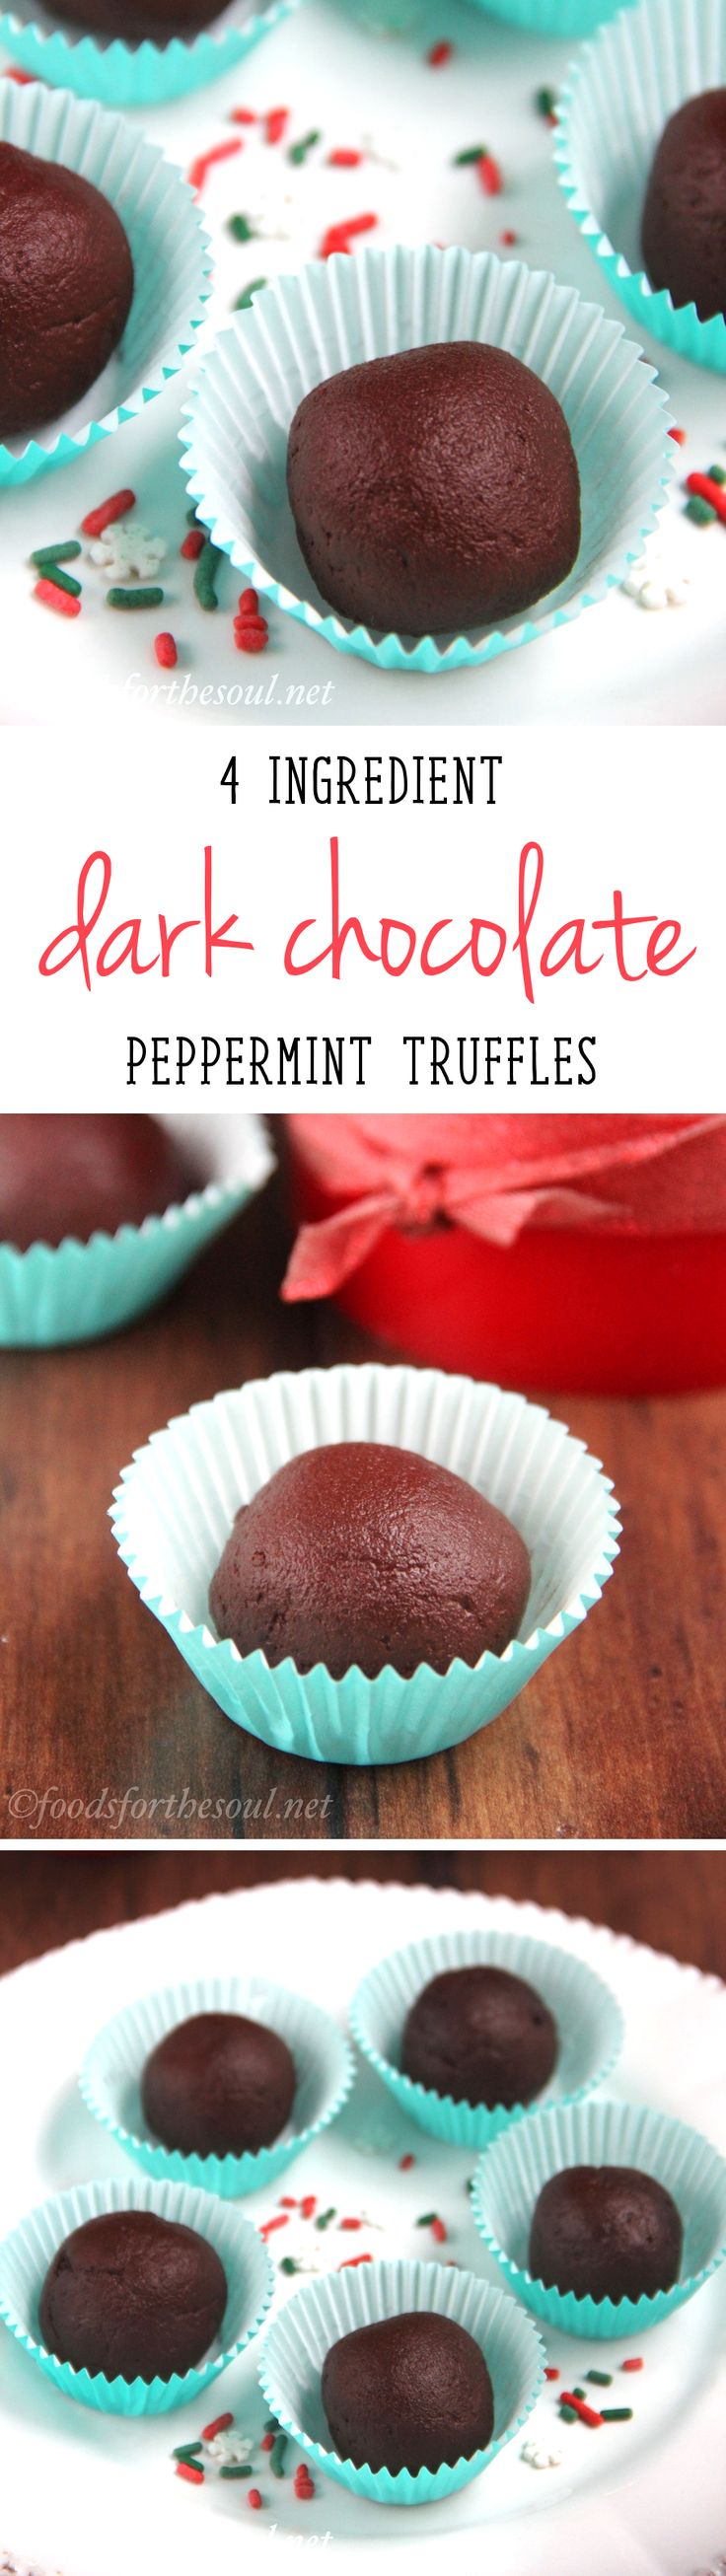 These decadent truffles are the EASIEST you'll ever make! You just need 4 ingredients, all of which are in your pantry already!